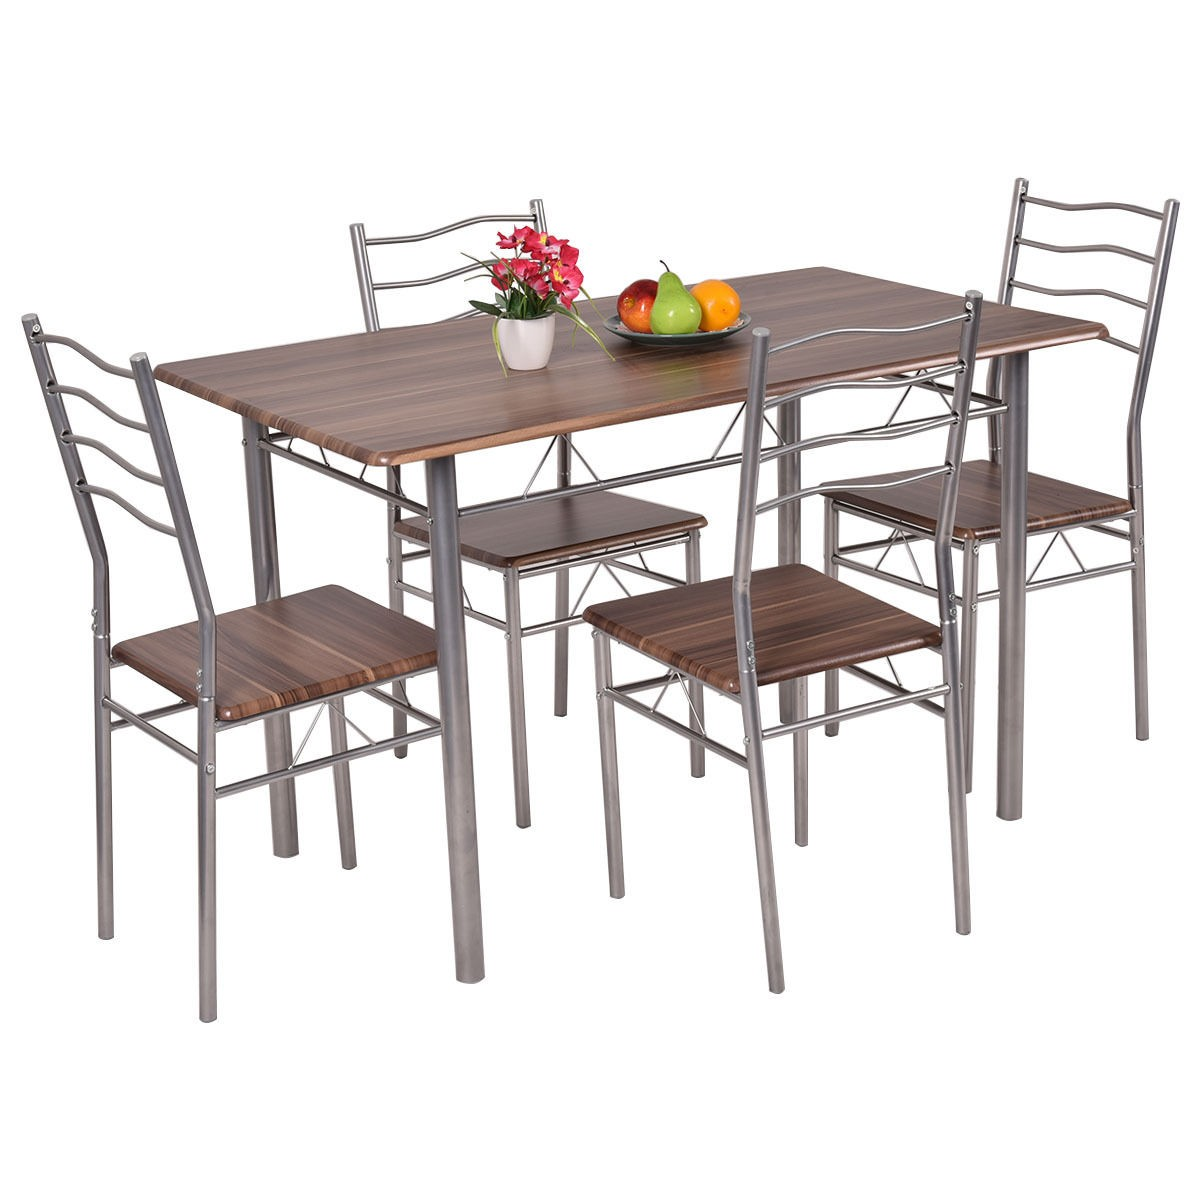 Modern Dining Table And Chairs 5 Piece Dining Set Wood Metal Table And 4 Chairs Kitchen